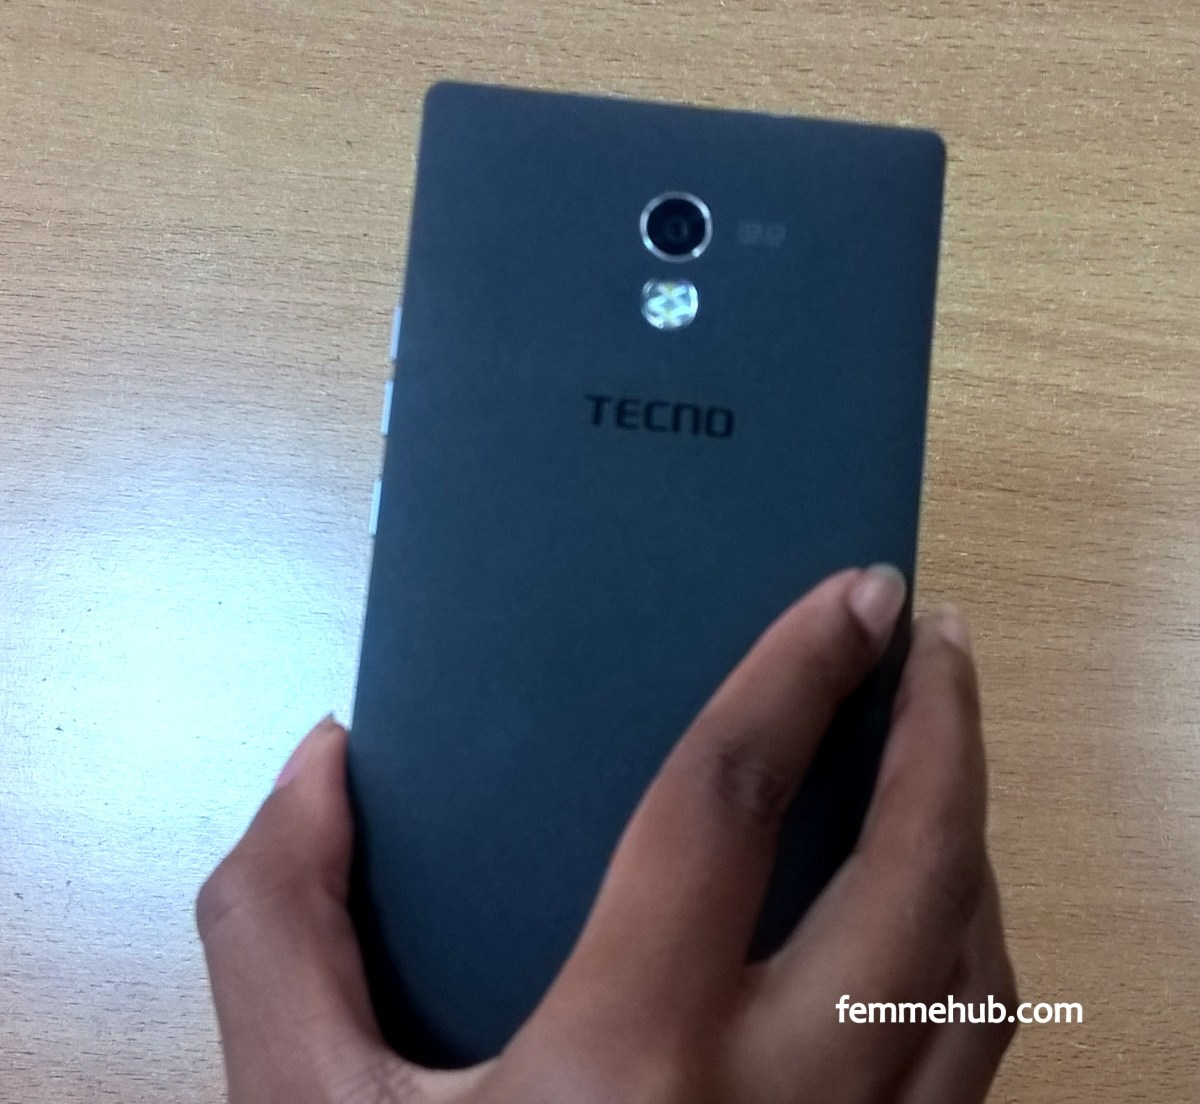 The Tecno Camon C9 - What You'll Find In The Box